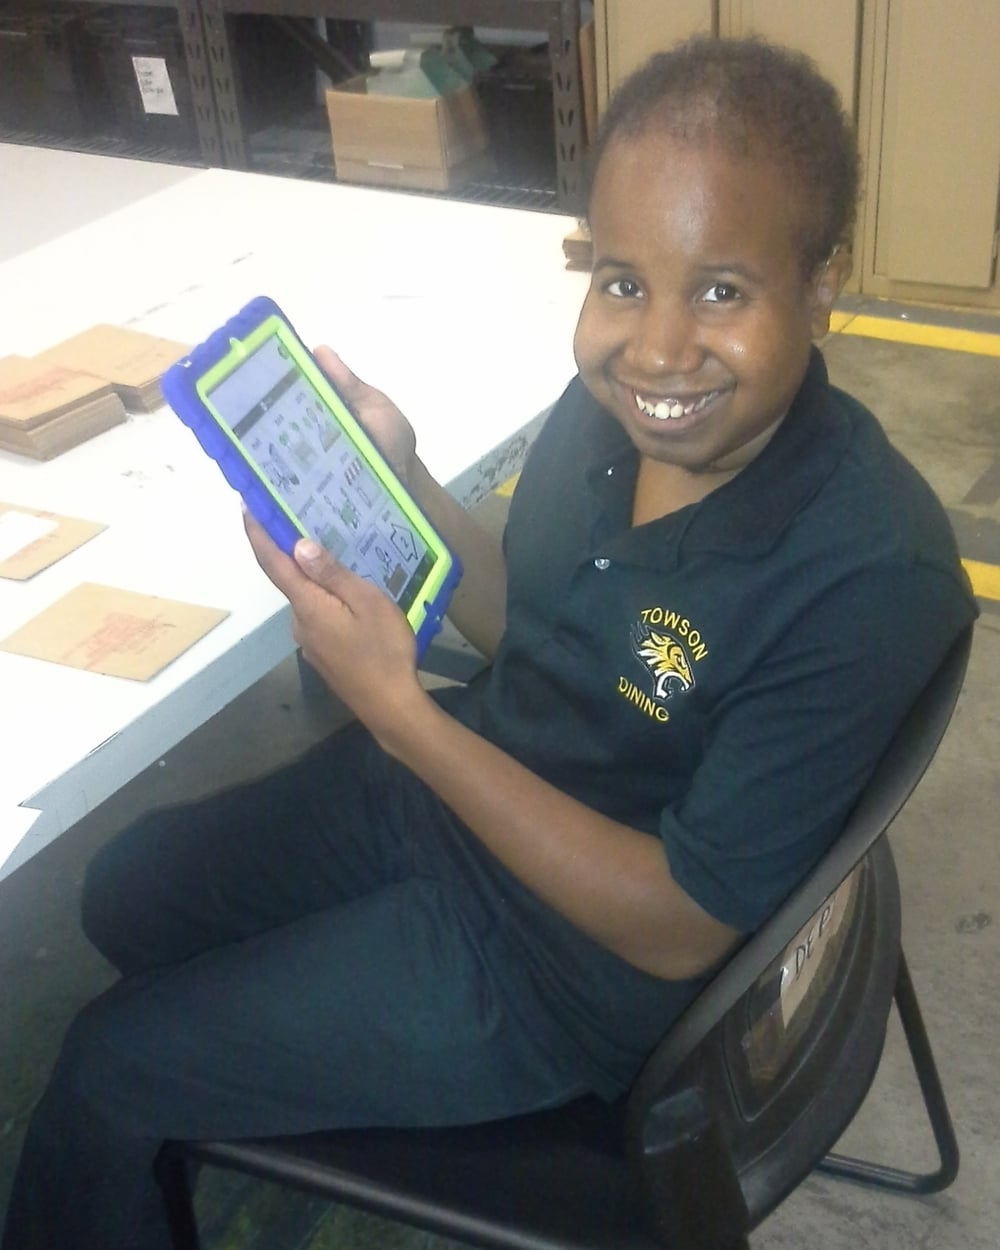 Giovann Green is shown here with his iPad and Otterbox case provided by Andrew's Gift. He is very excited to be able to utilize his iPad and ProliQuo to communicate with his coworkers and staff at his day program.